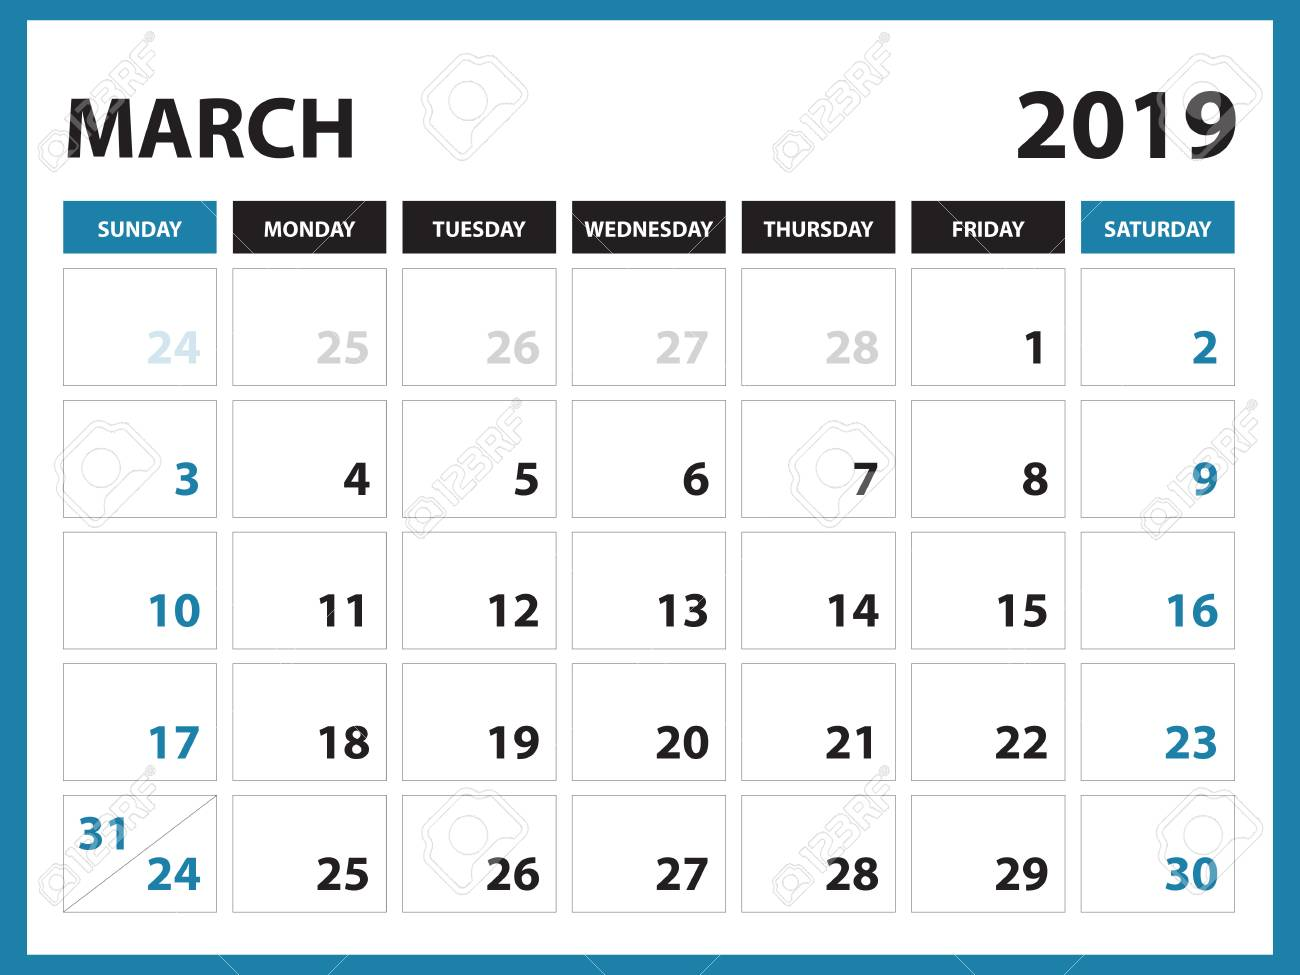 Printable Calendar March 2019.Desk Calendar For March 2019 Template Printable Calendar Planner